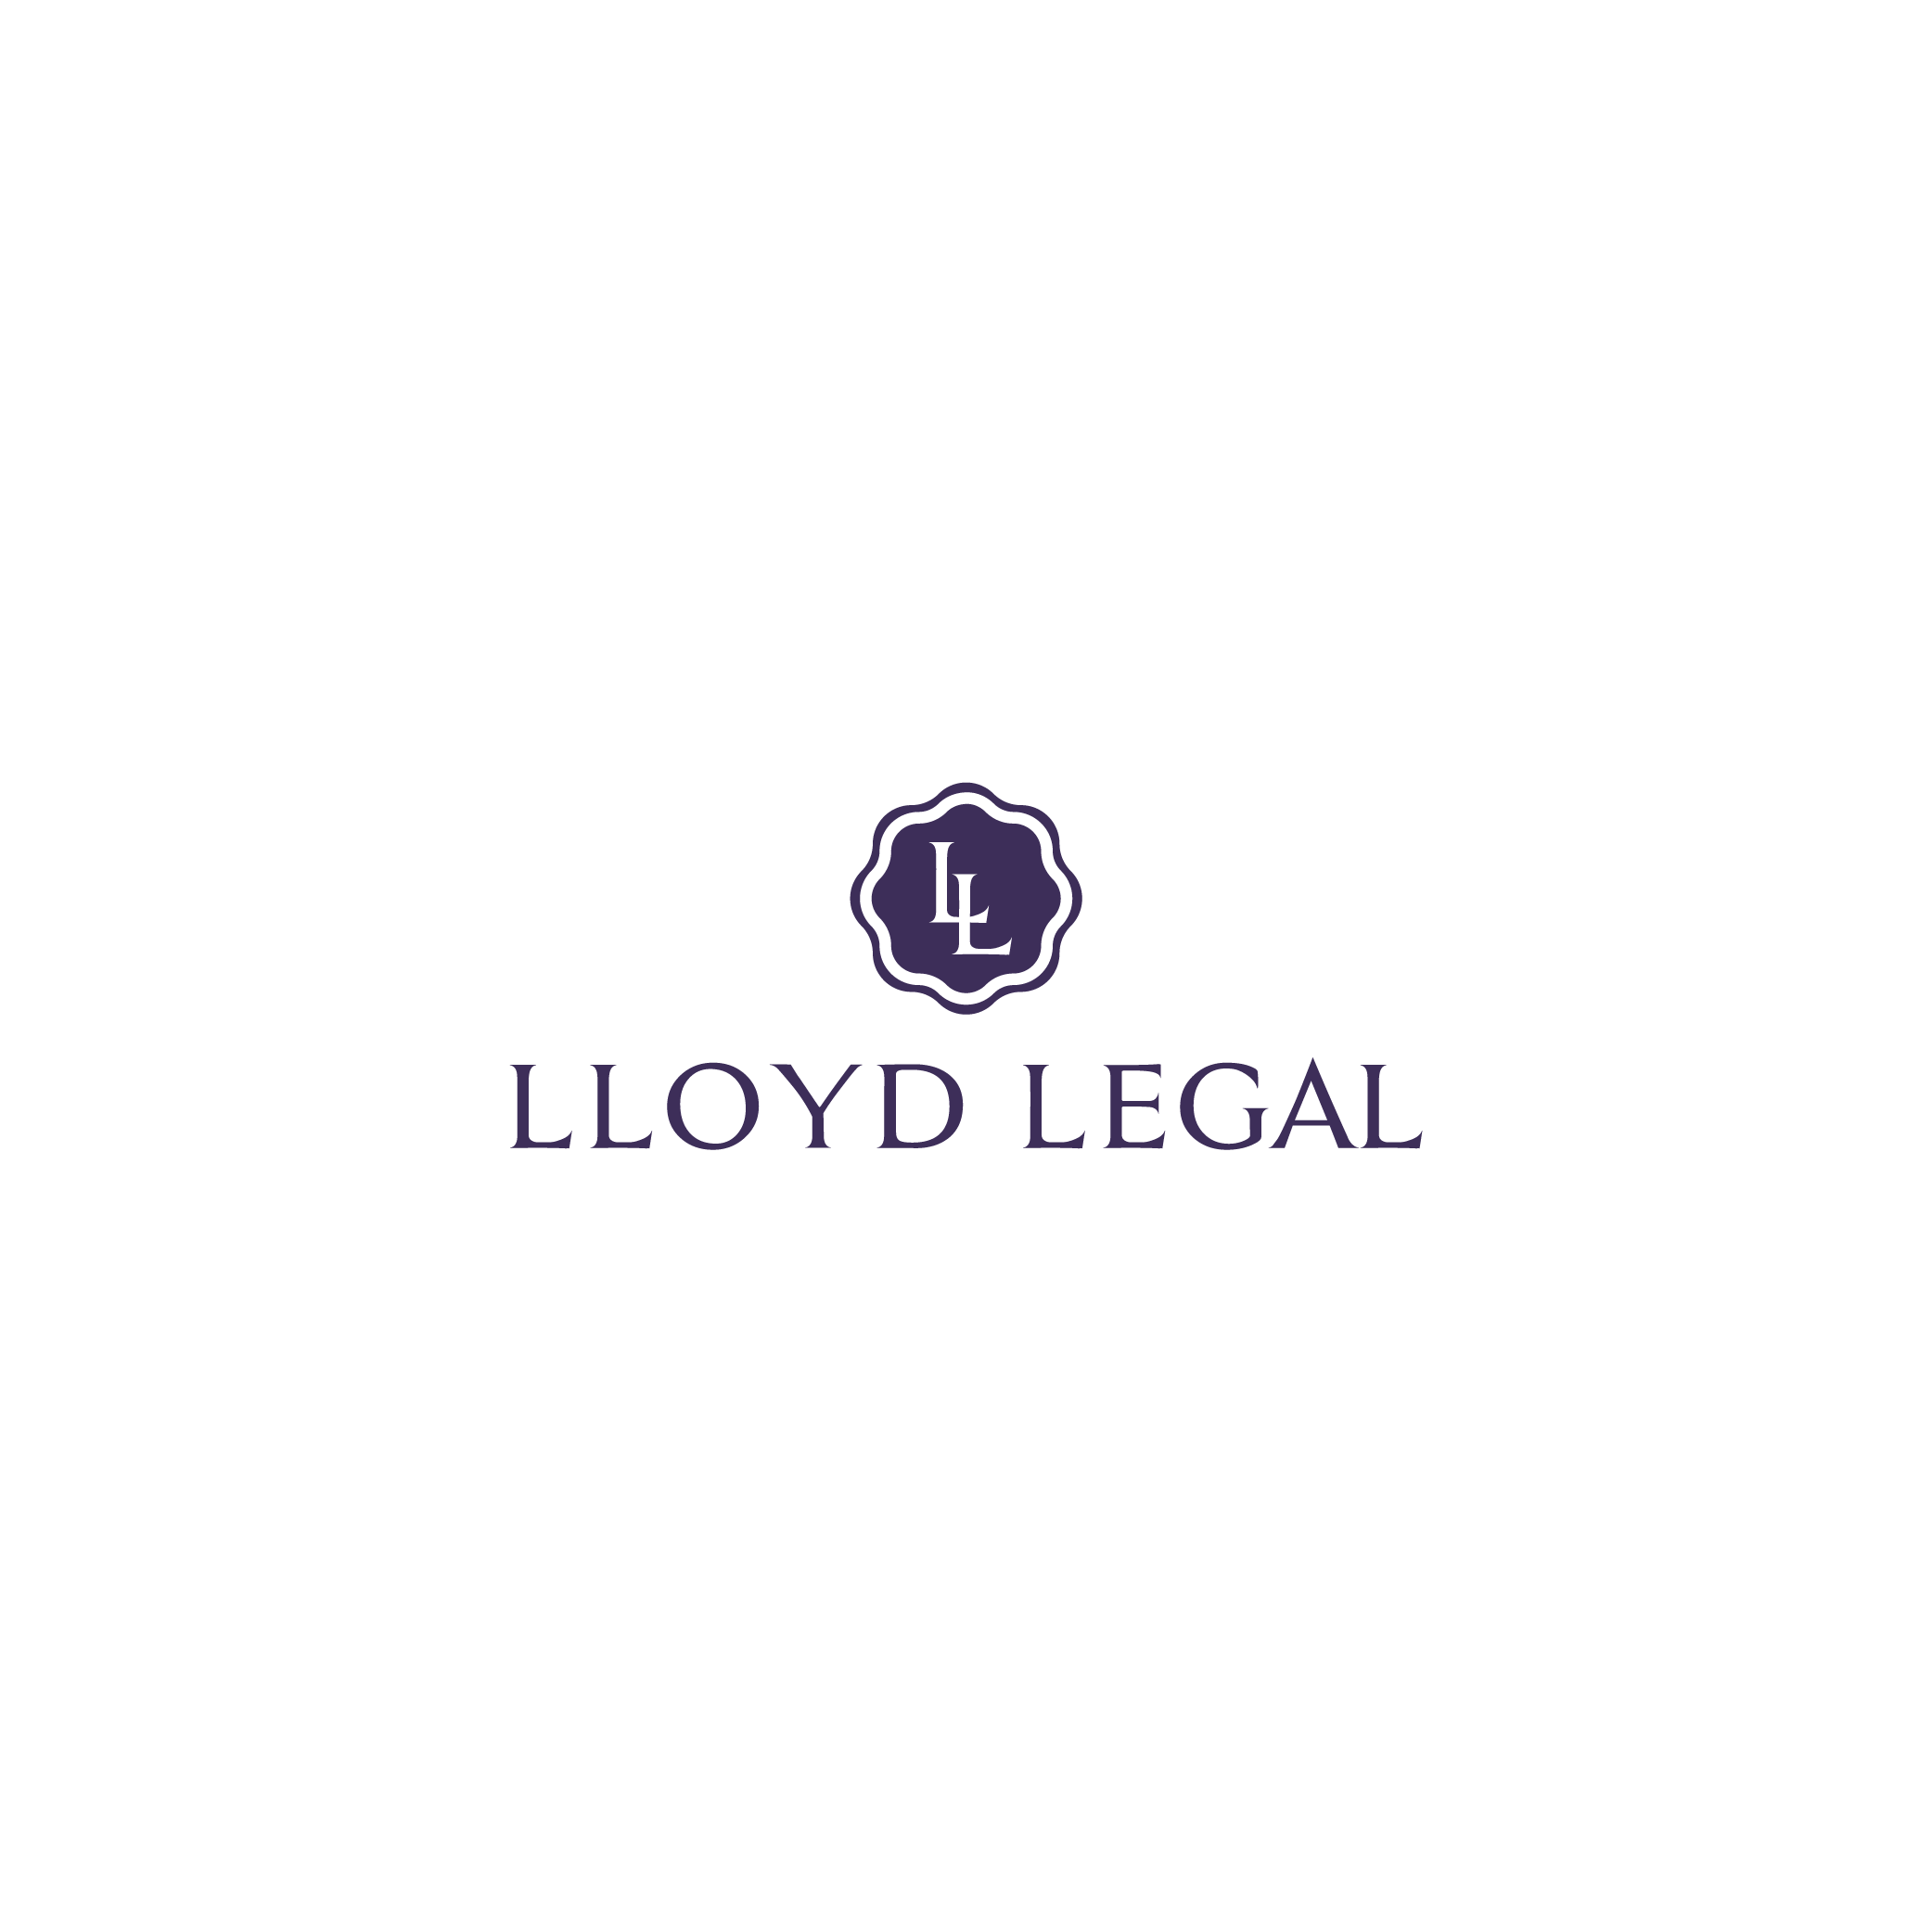 woodruff_cory_lloyd_legal-01.png